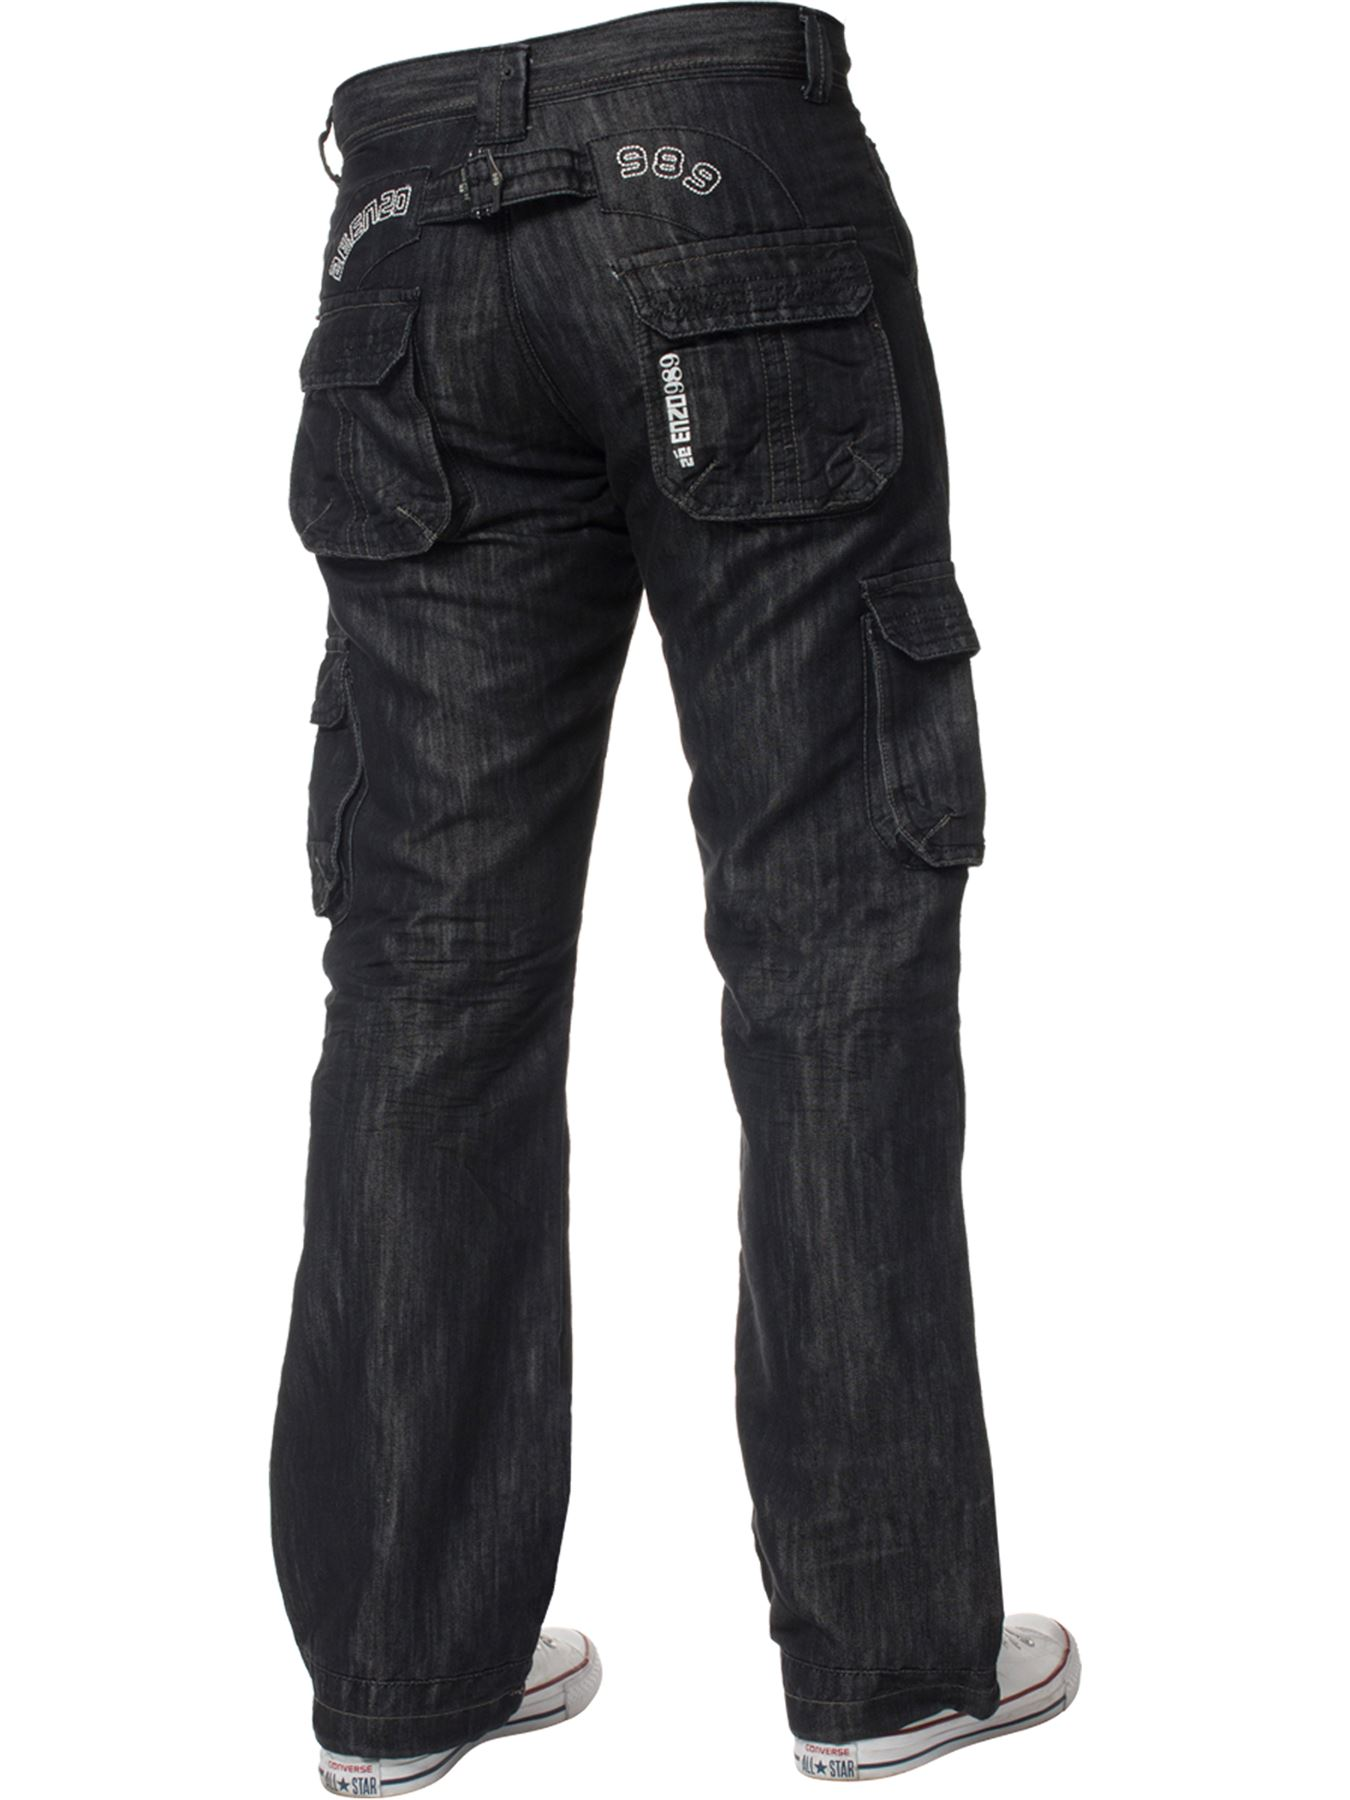 Enzo-Mens-Cargo-Combat-Trousers-Jeans-Work-Casual-Denim-Pants-Big-Tall-All-Waist thumbnail 4